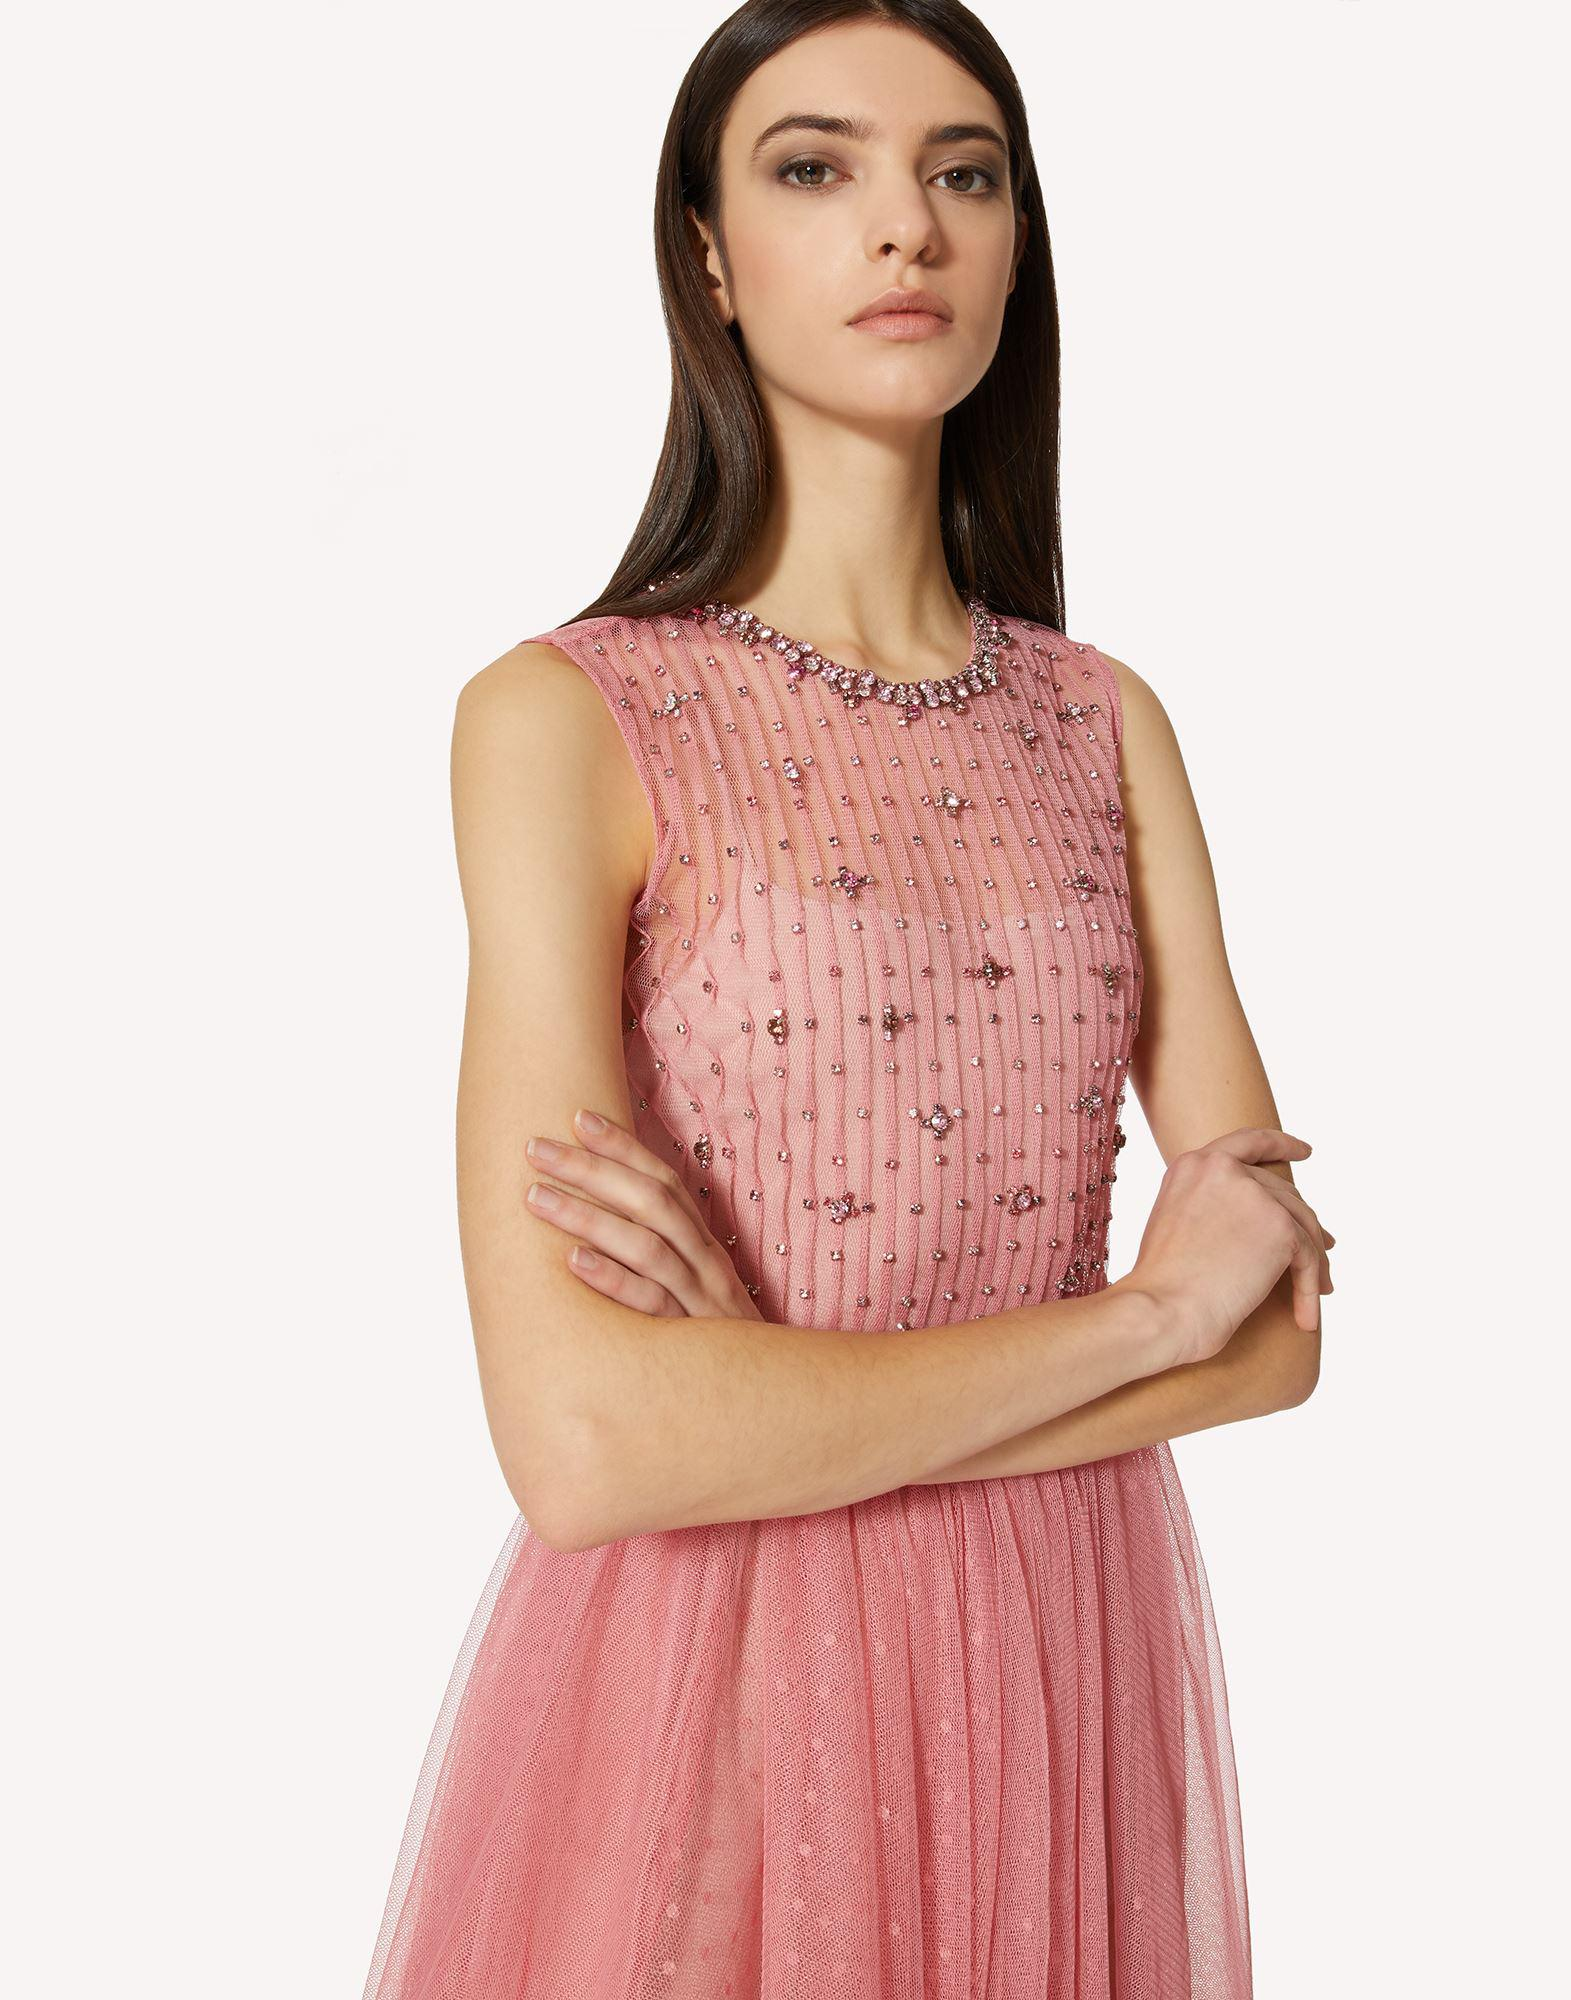 POINT D'ESPRIT TULLE DRESS WITH RHINESTONE EMBROIDERY 3